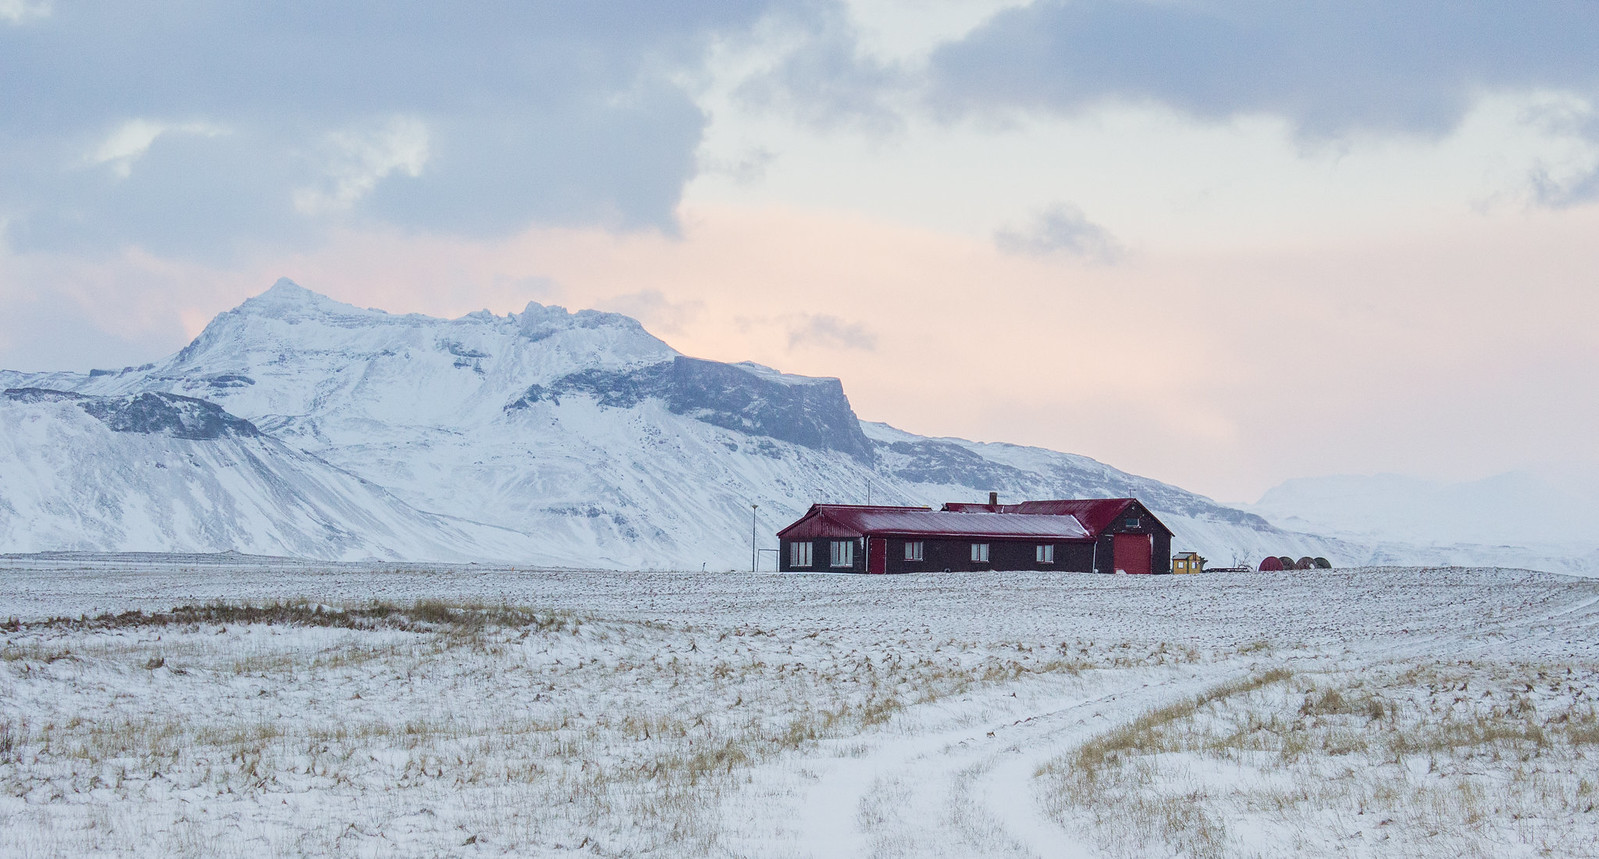 12 photos to inspire you to visit Iceland's Snaefellsnes Peninsula right now